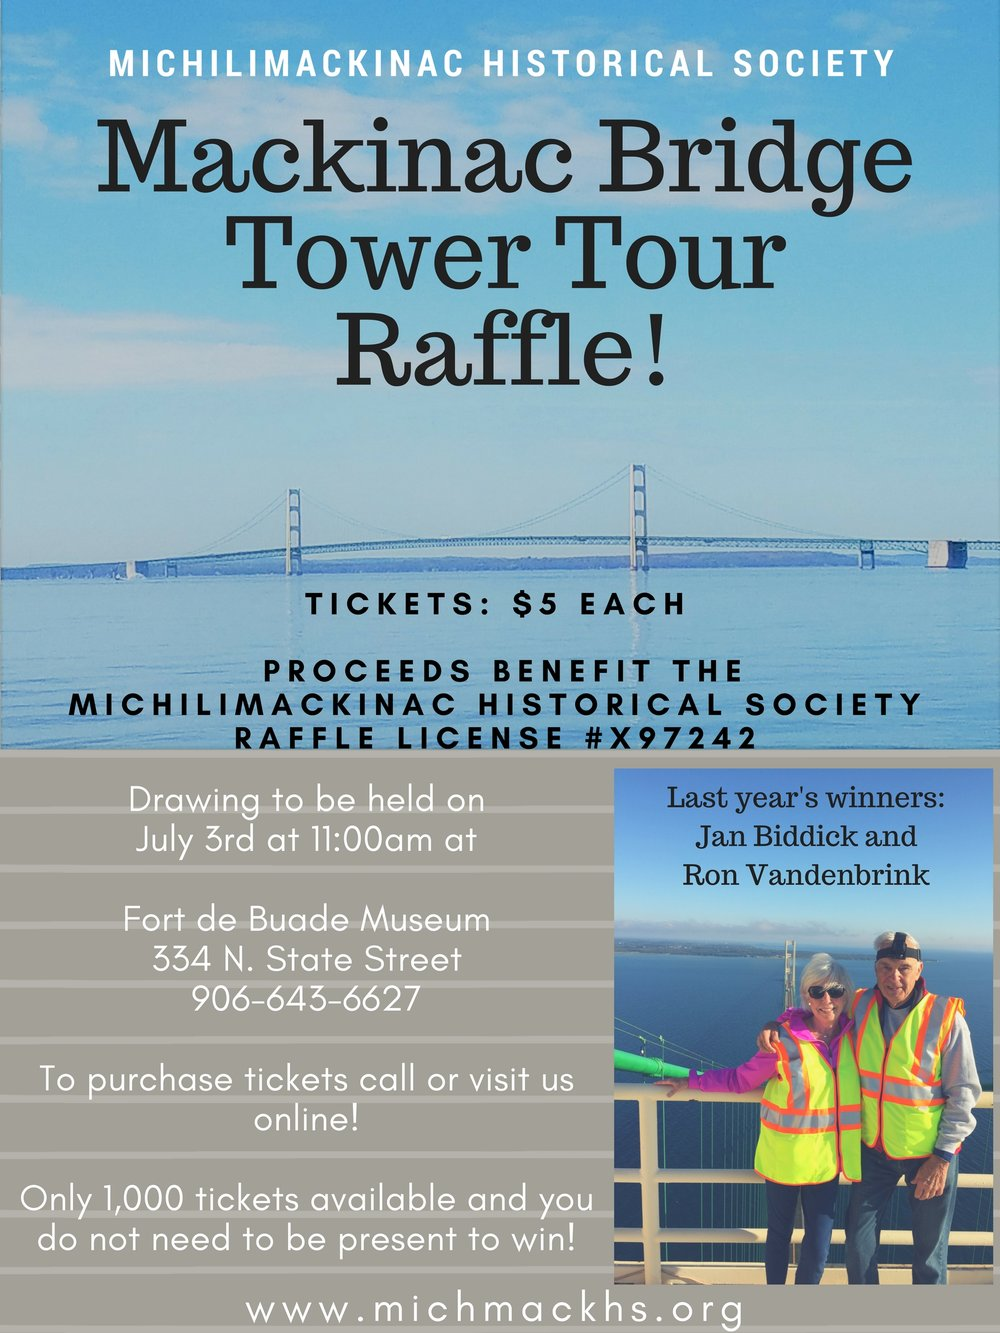 Have you ever wondered what it would be like to be at the top of the Mackinac Bridge?!? Buy a Mackinac Bridge Tower Tour Raffle Ticket and experience the top of the Bridge firsthand! We are only selling 1,000 tickets so get yours before they are gone! Tickets can be purchased by coming in to the Historical Society, purchasing tickets over the phone at 906-643-6627 or by going to the Shop tab at the top of the page.